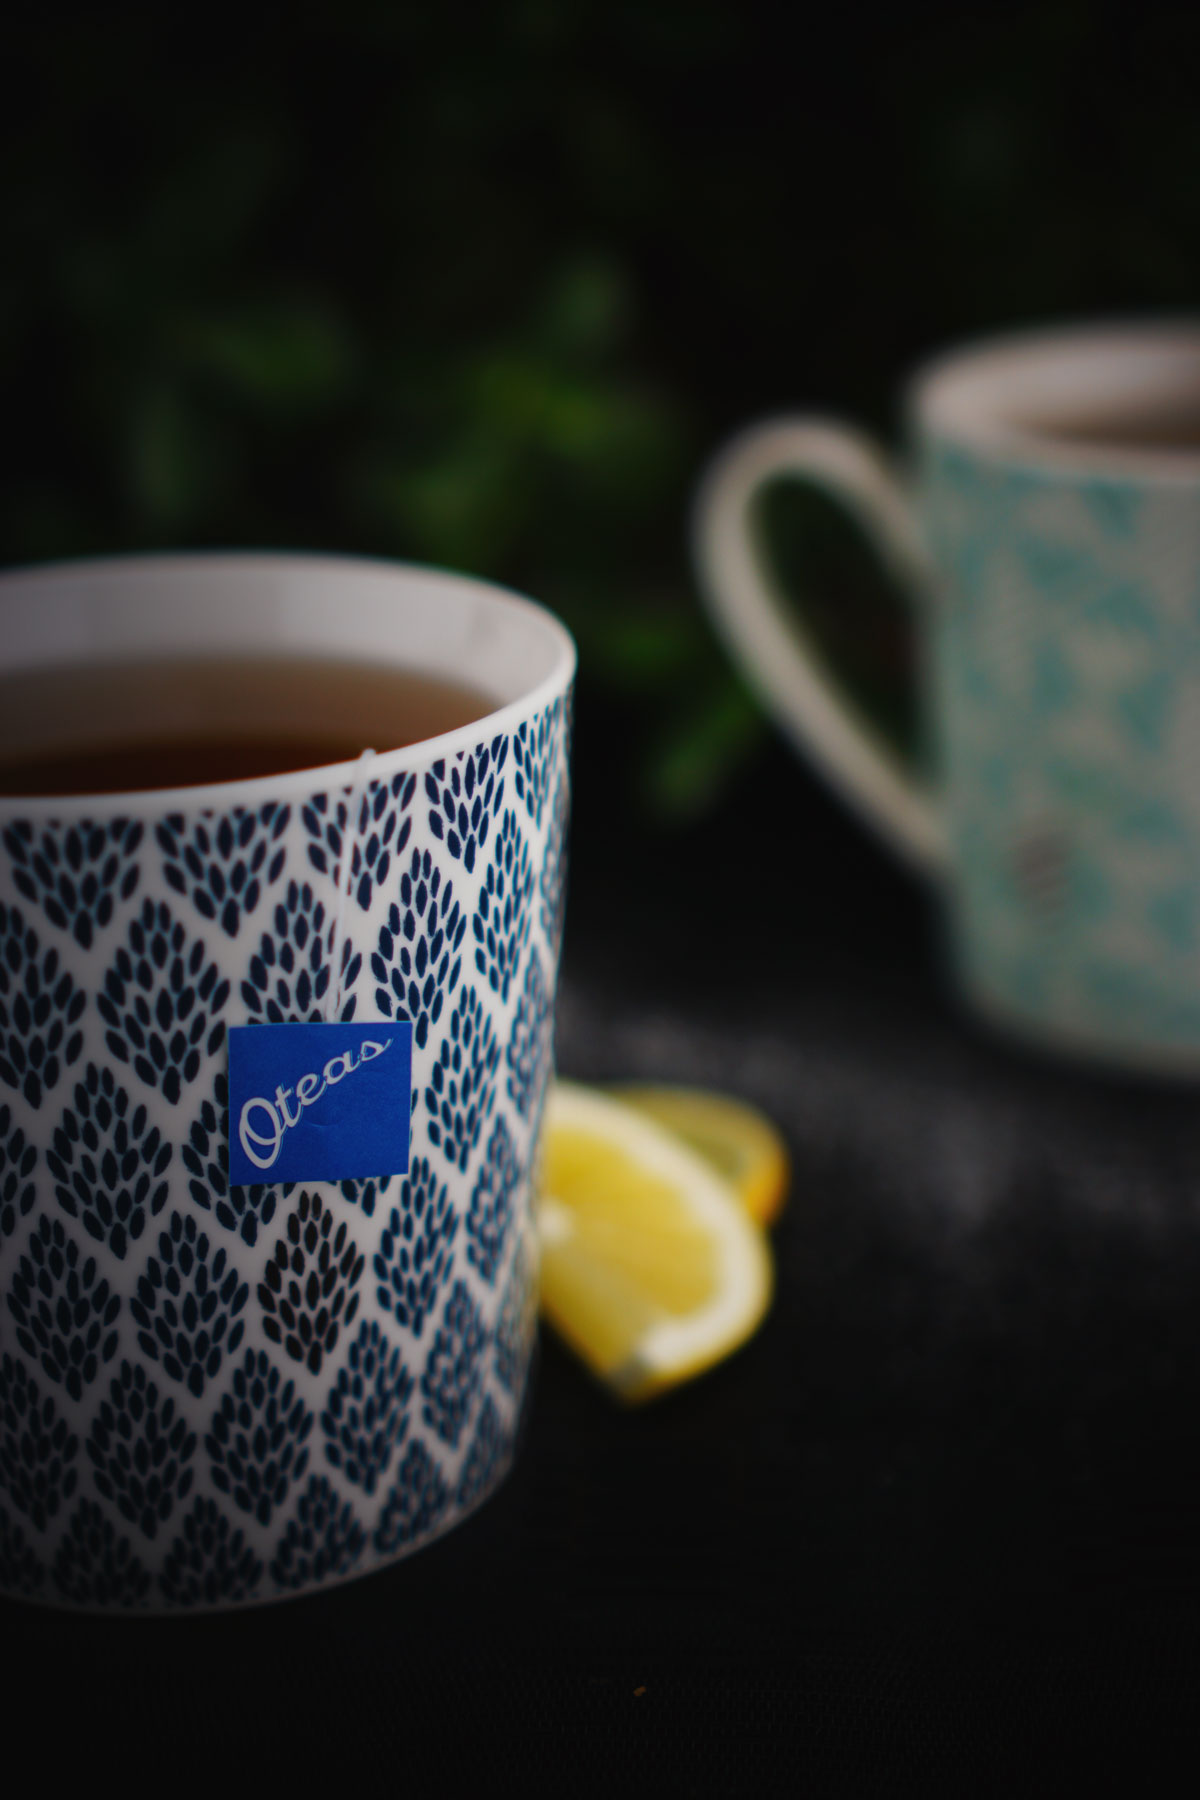 Strength in every sip. - Beyond the calming benefits and sleep aids associated with traditional herbs like chamomile, OTeas health and wellness teas can ease digestion,help regulate blood sugar, promote immunity, reduce anxiety and improve skin and bone health. If that sounds like we have super powers, that's basically because we do.